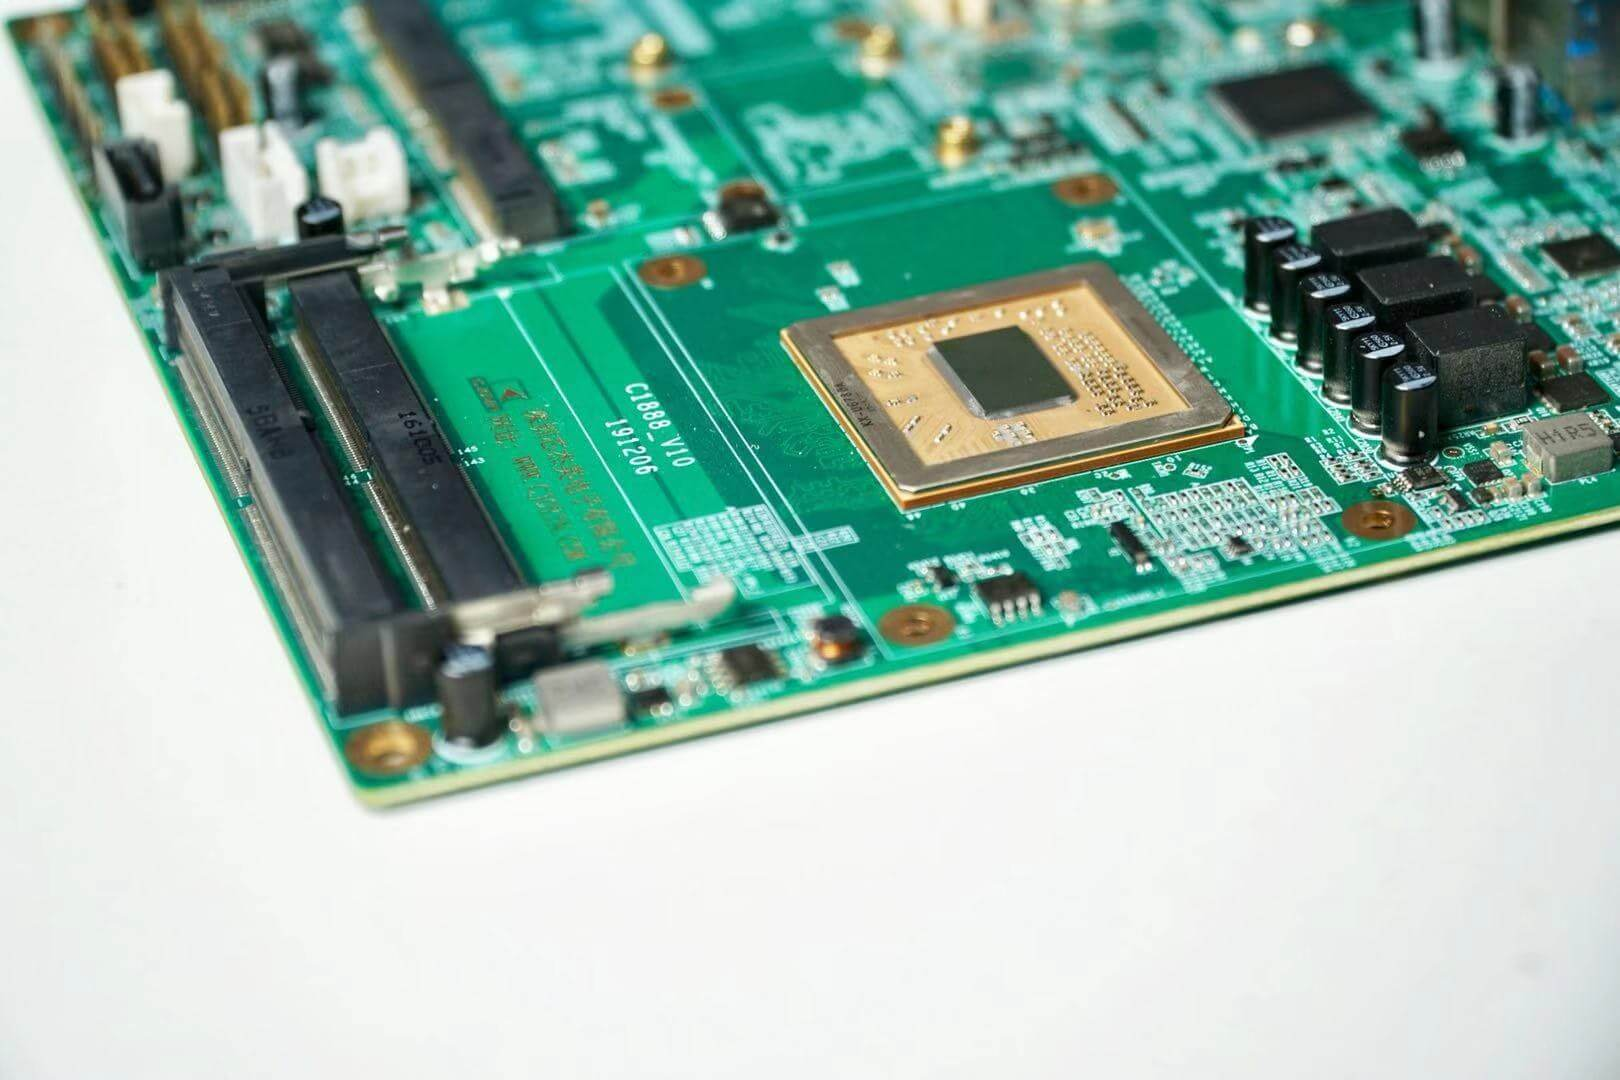 Made in China 8-core x86 CPU arrives to market